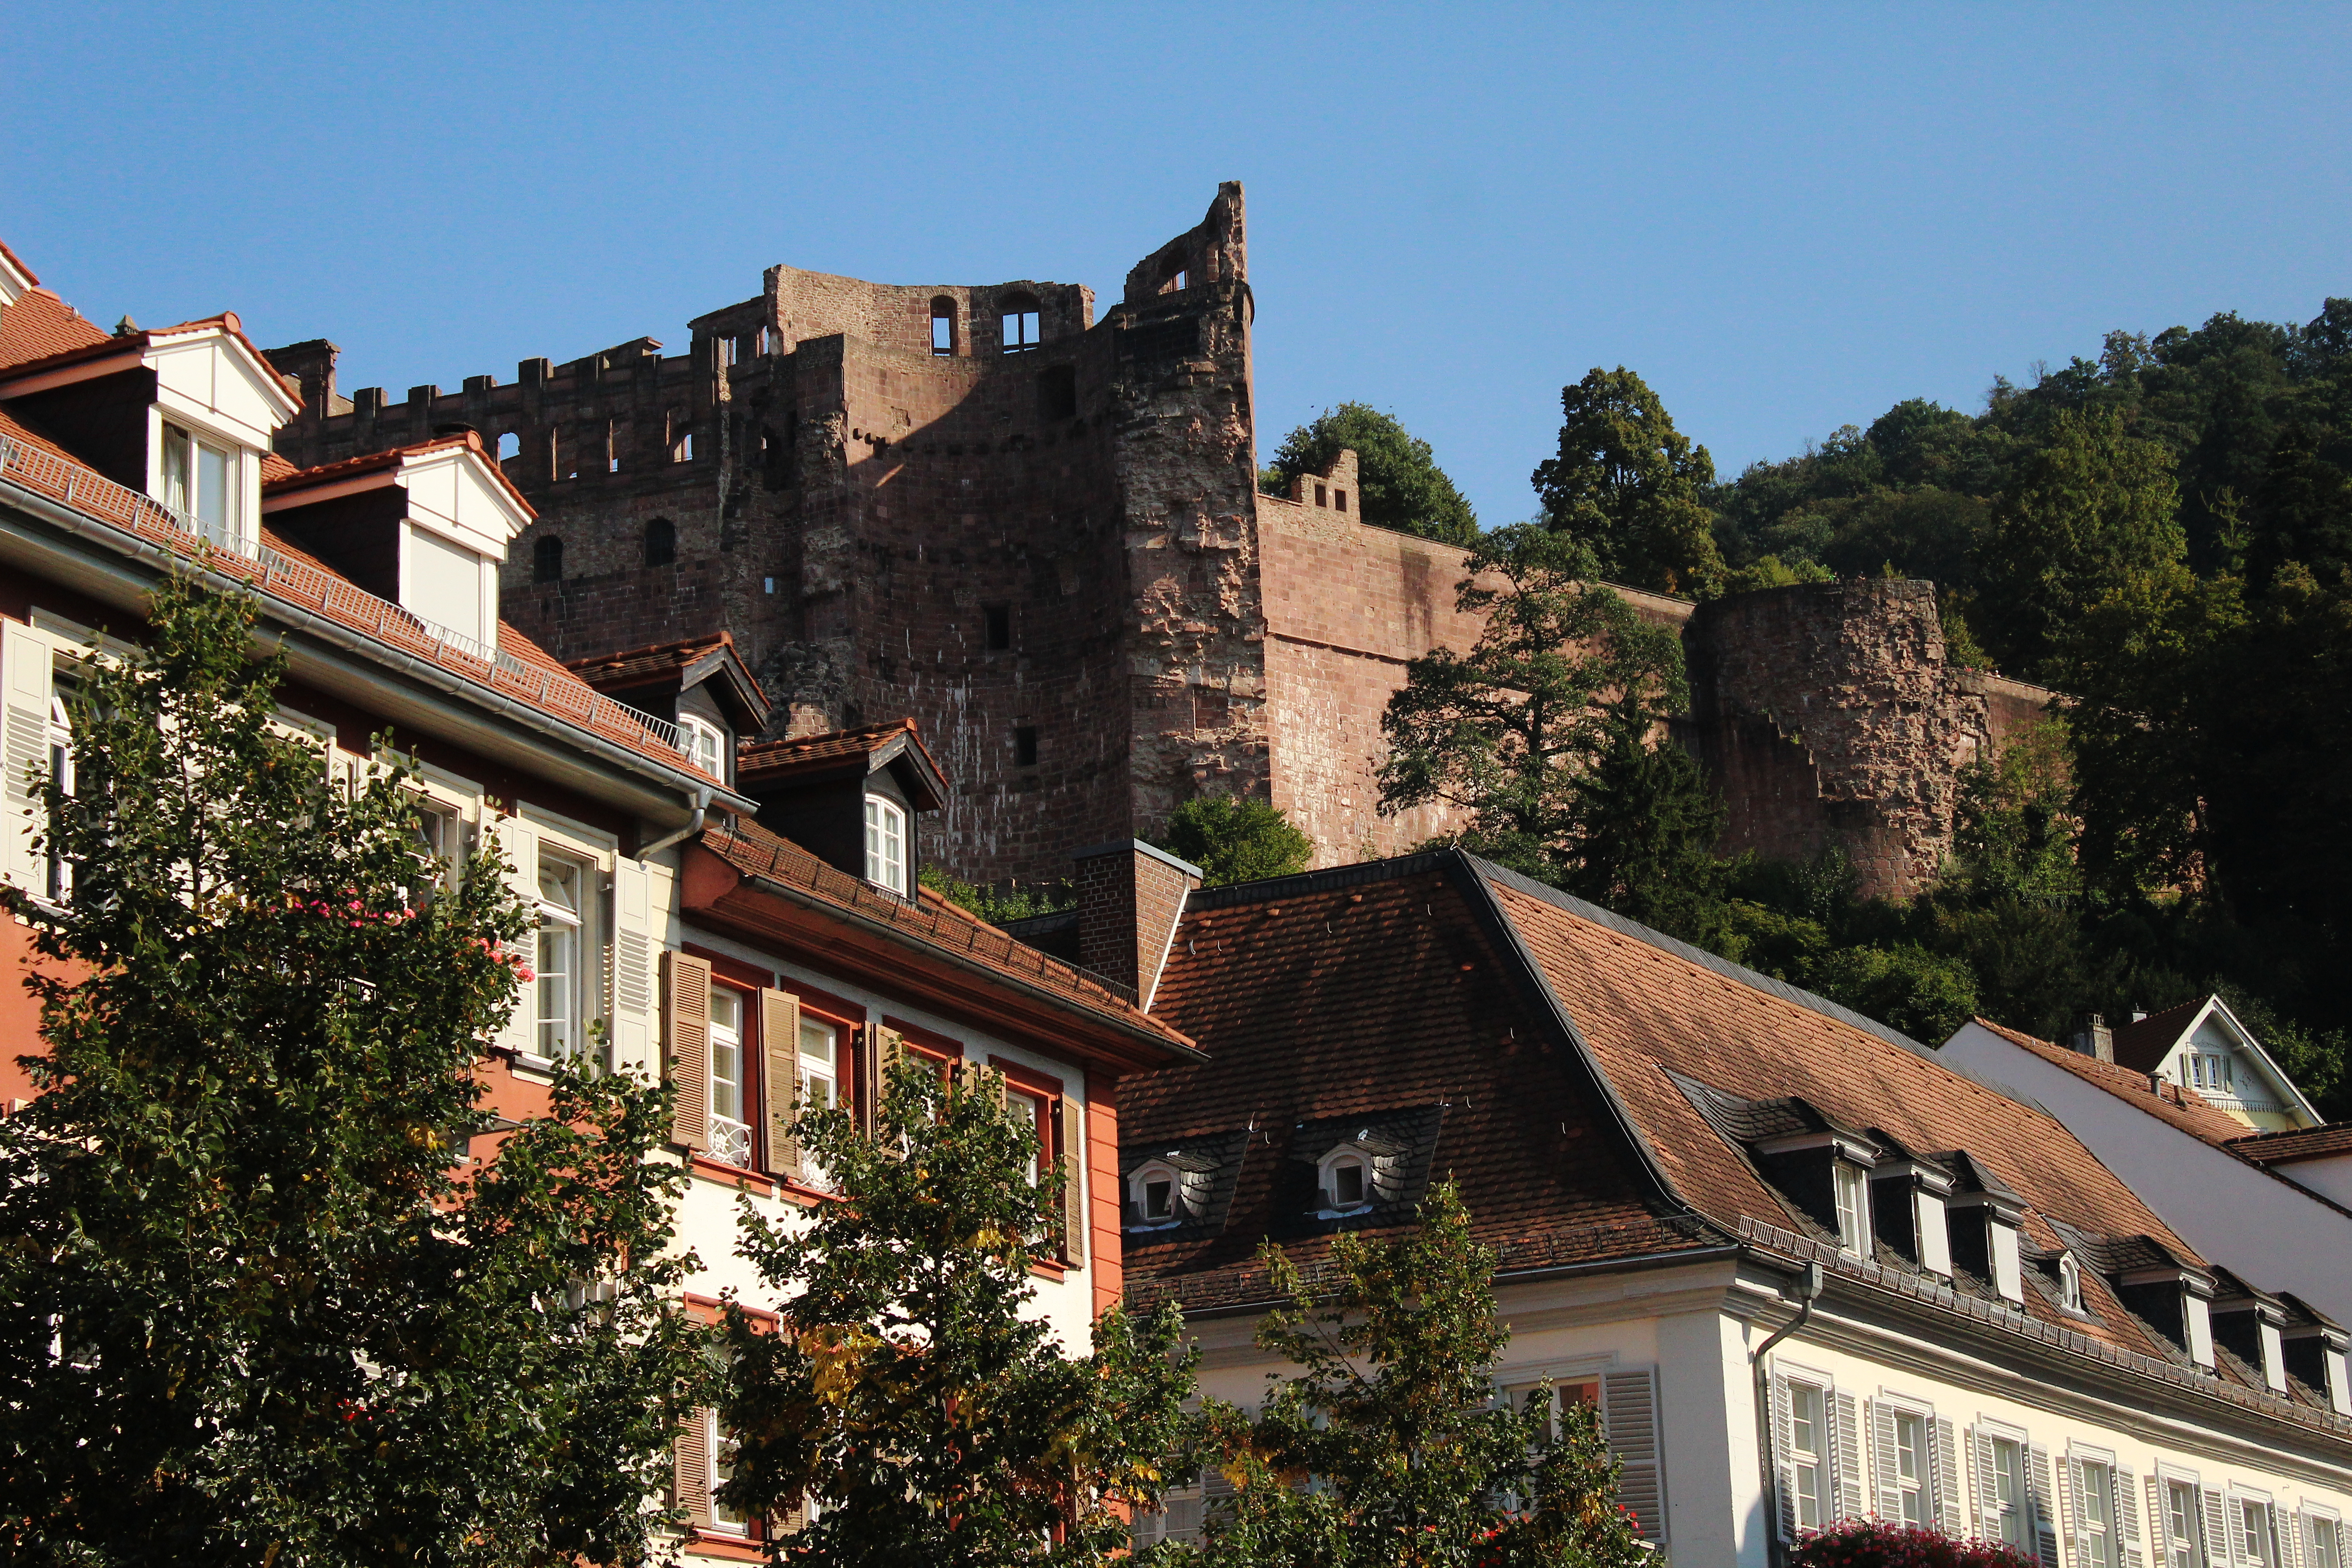 Heidelberg Castle is one of the most beautiful places in Germany